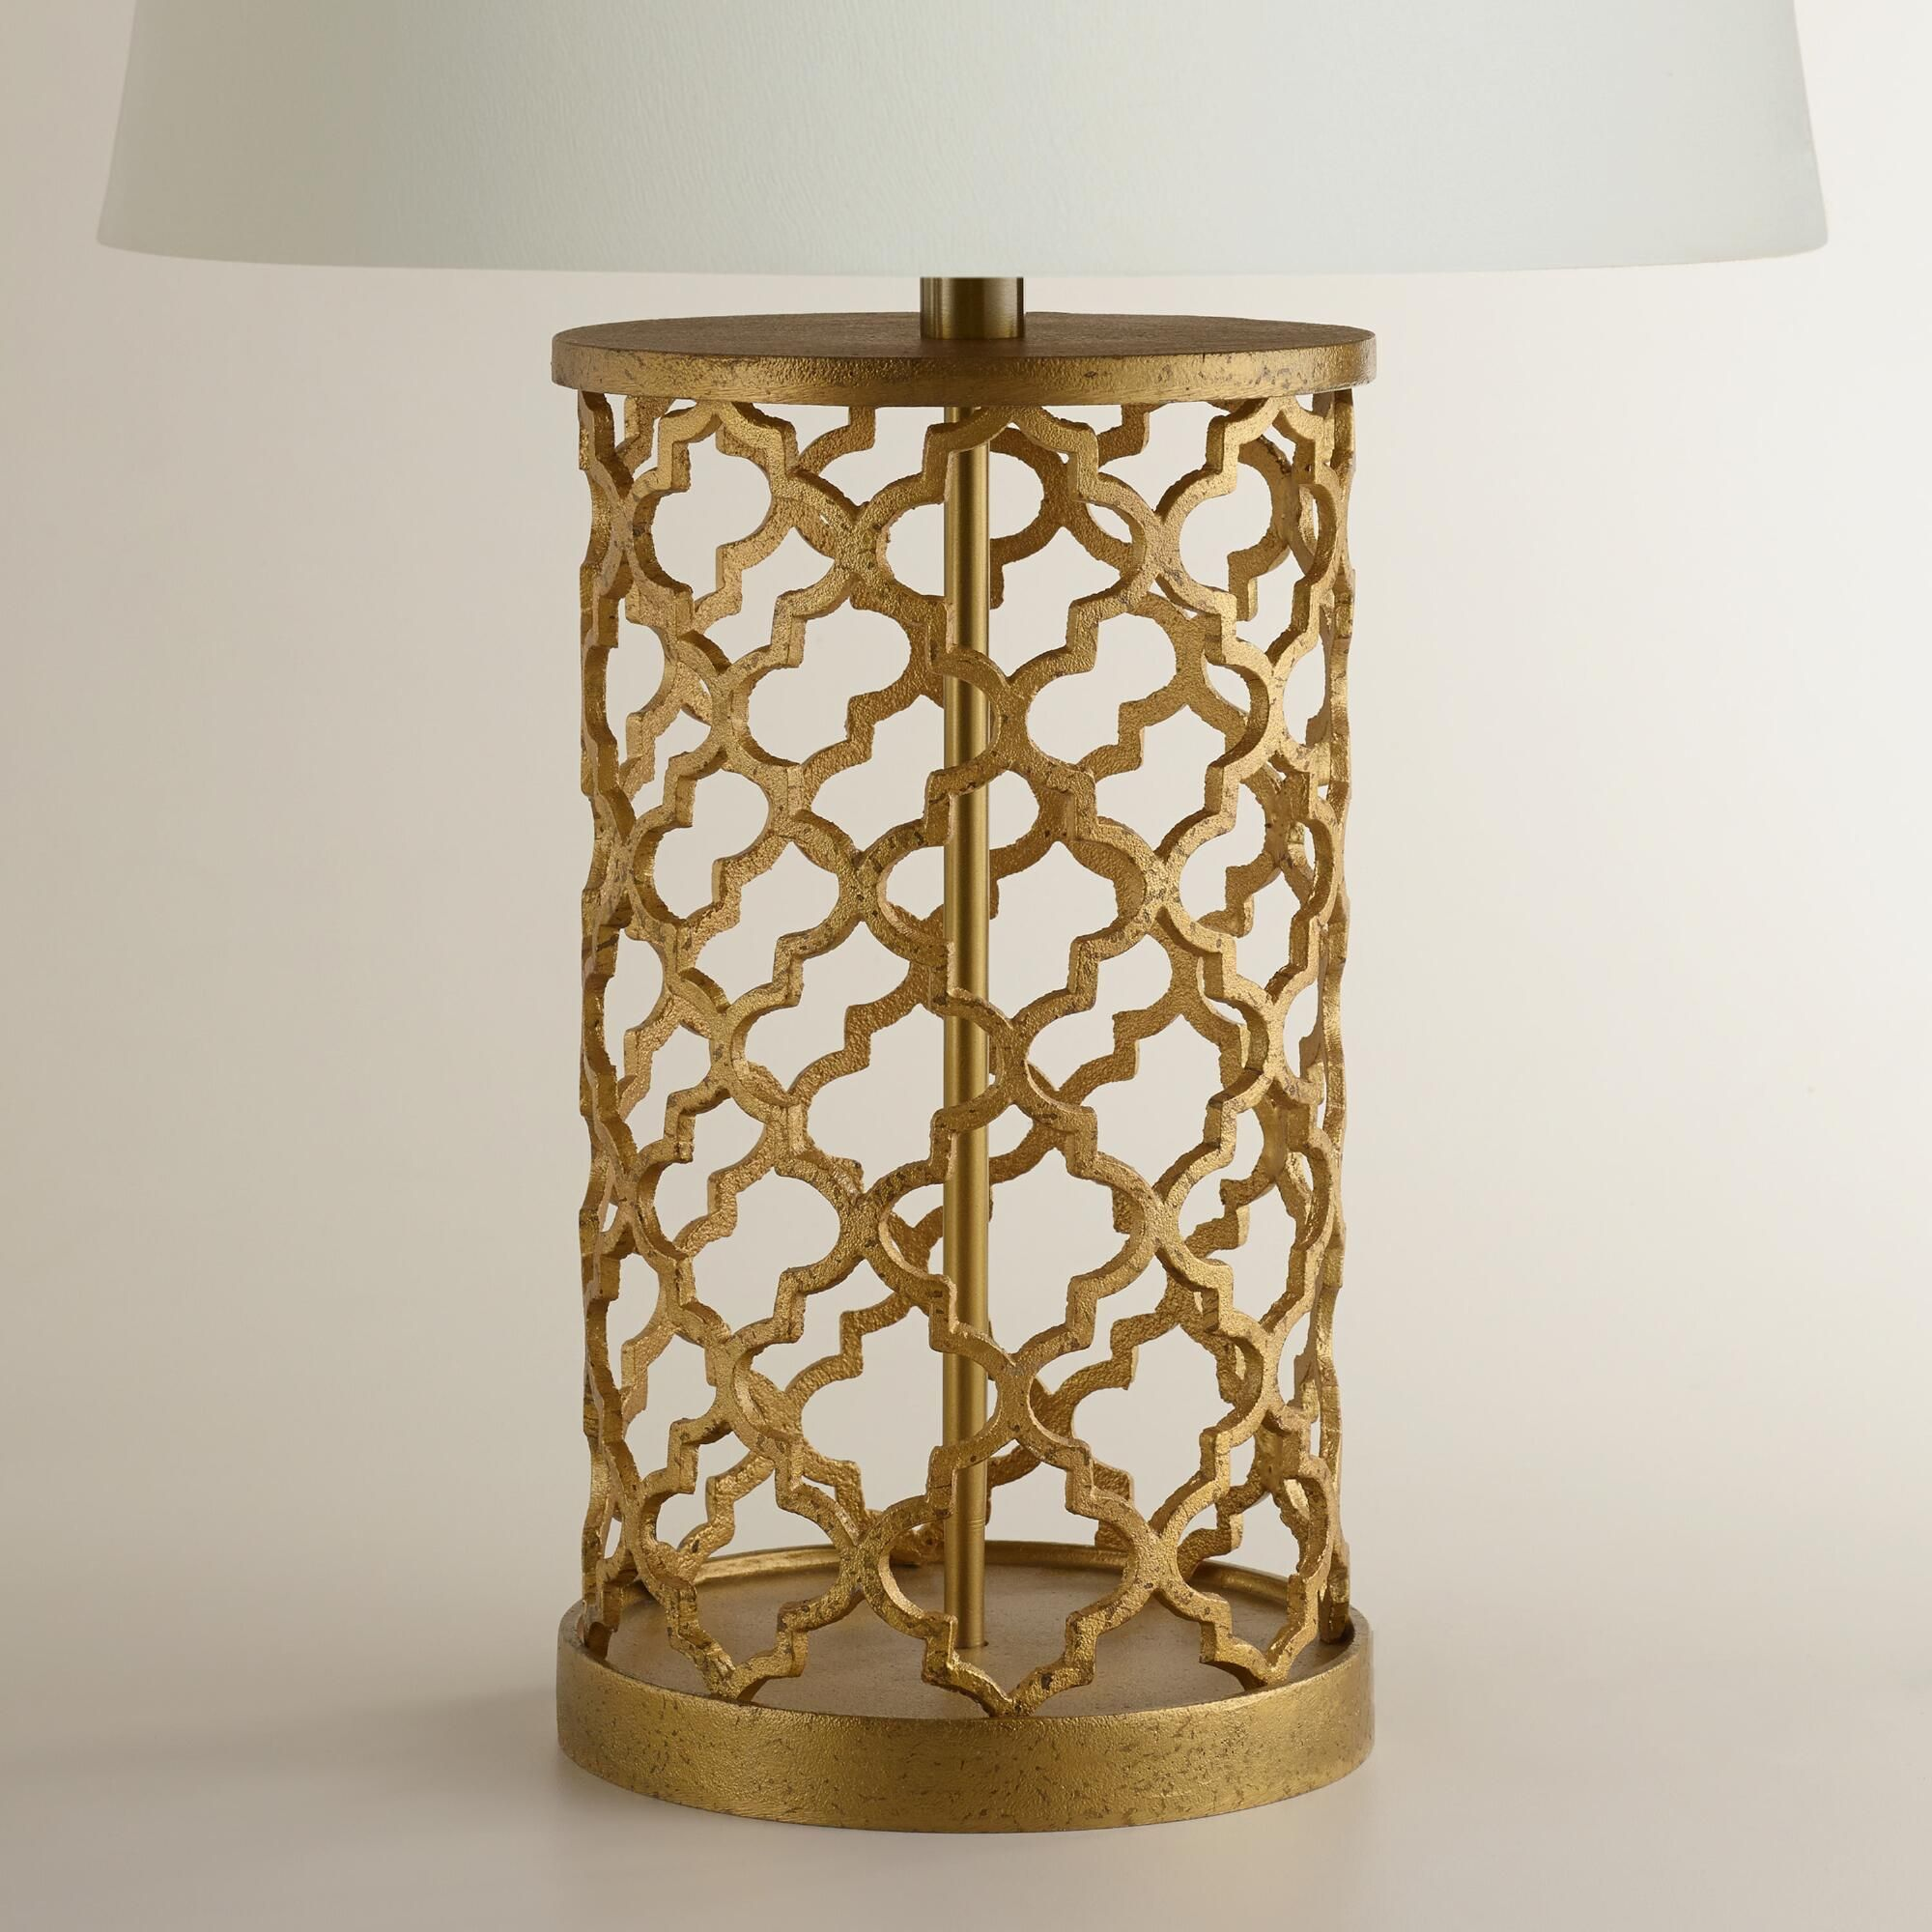 Distressed Gold Moroccan Table Lamp Base Moroccan Table